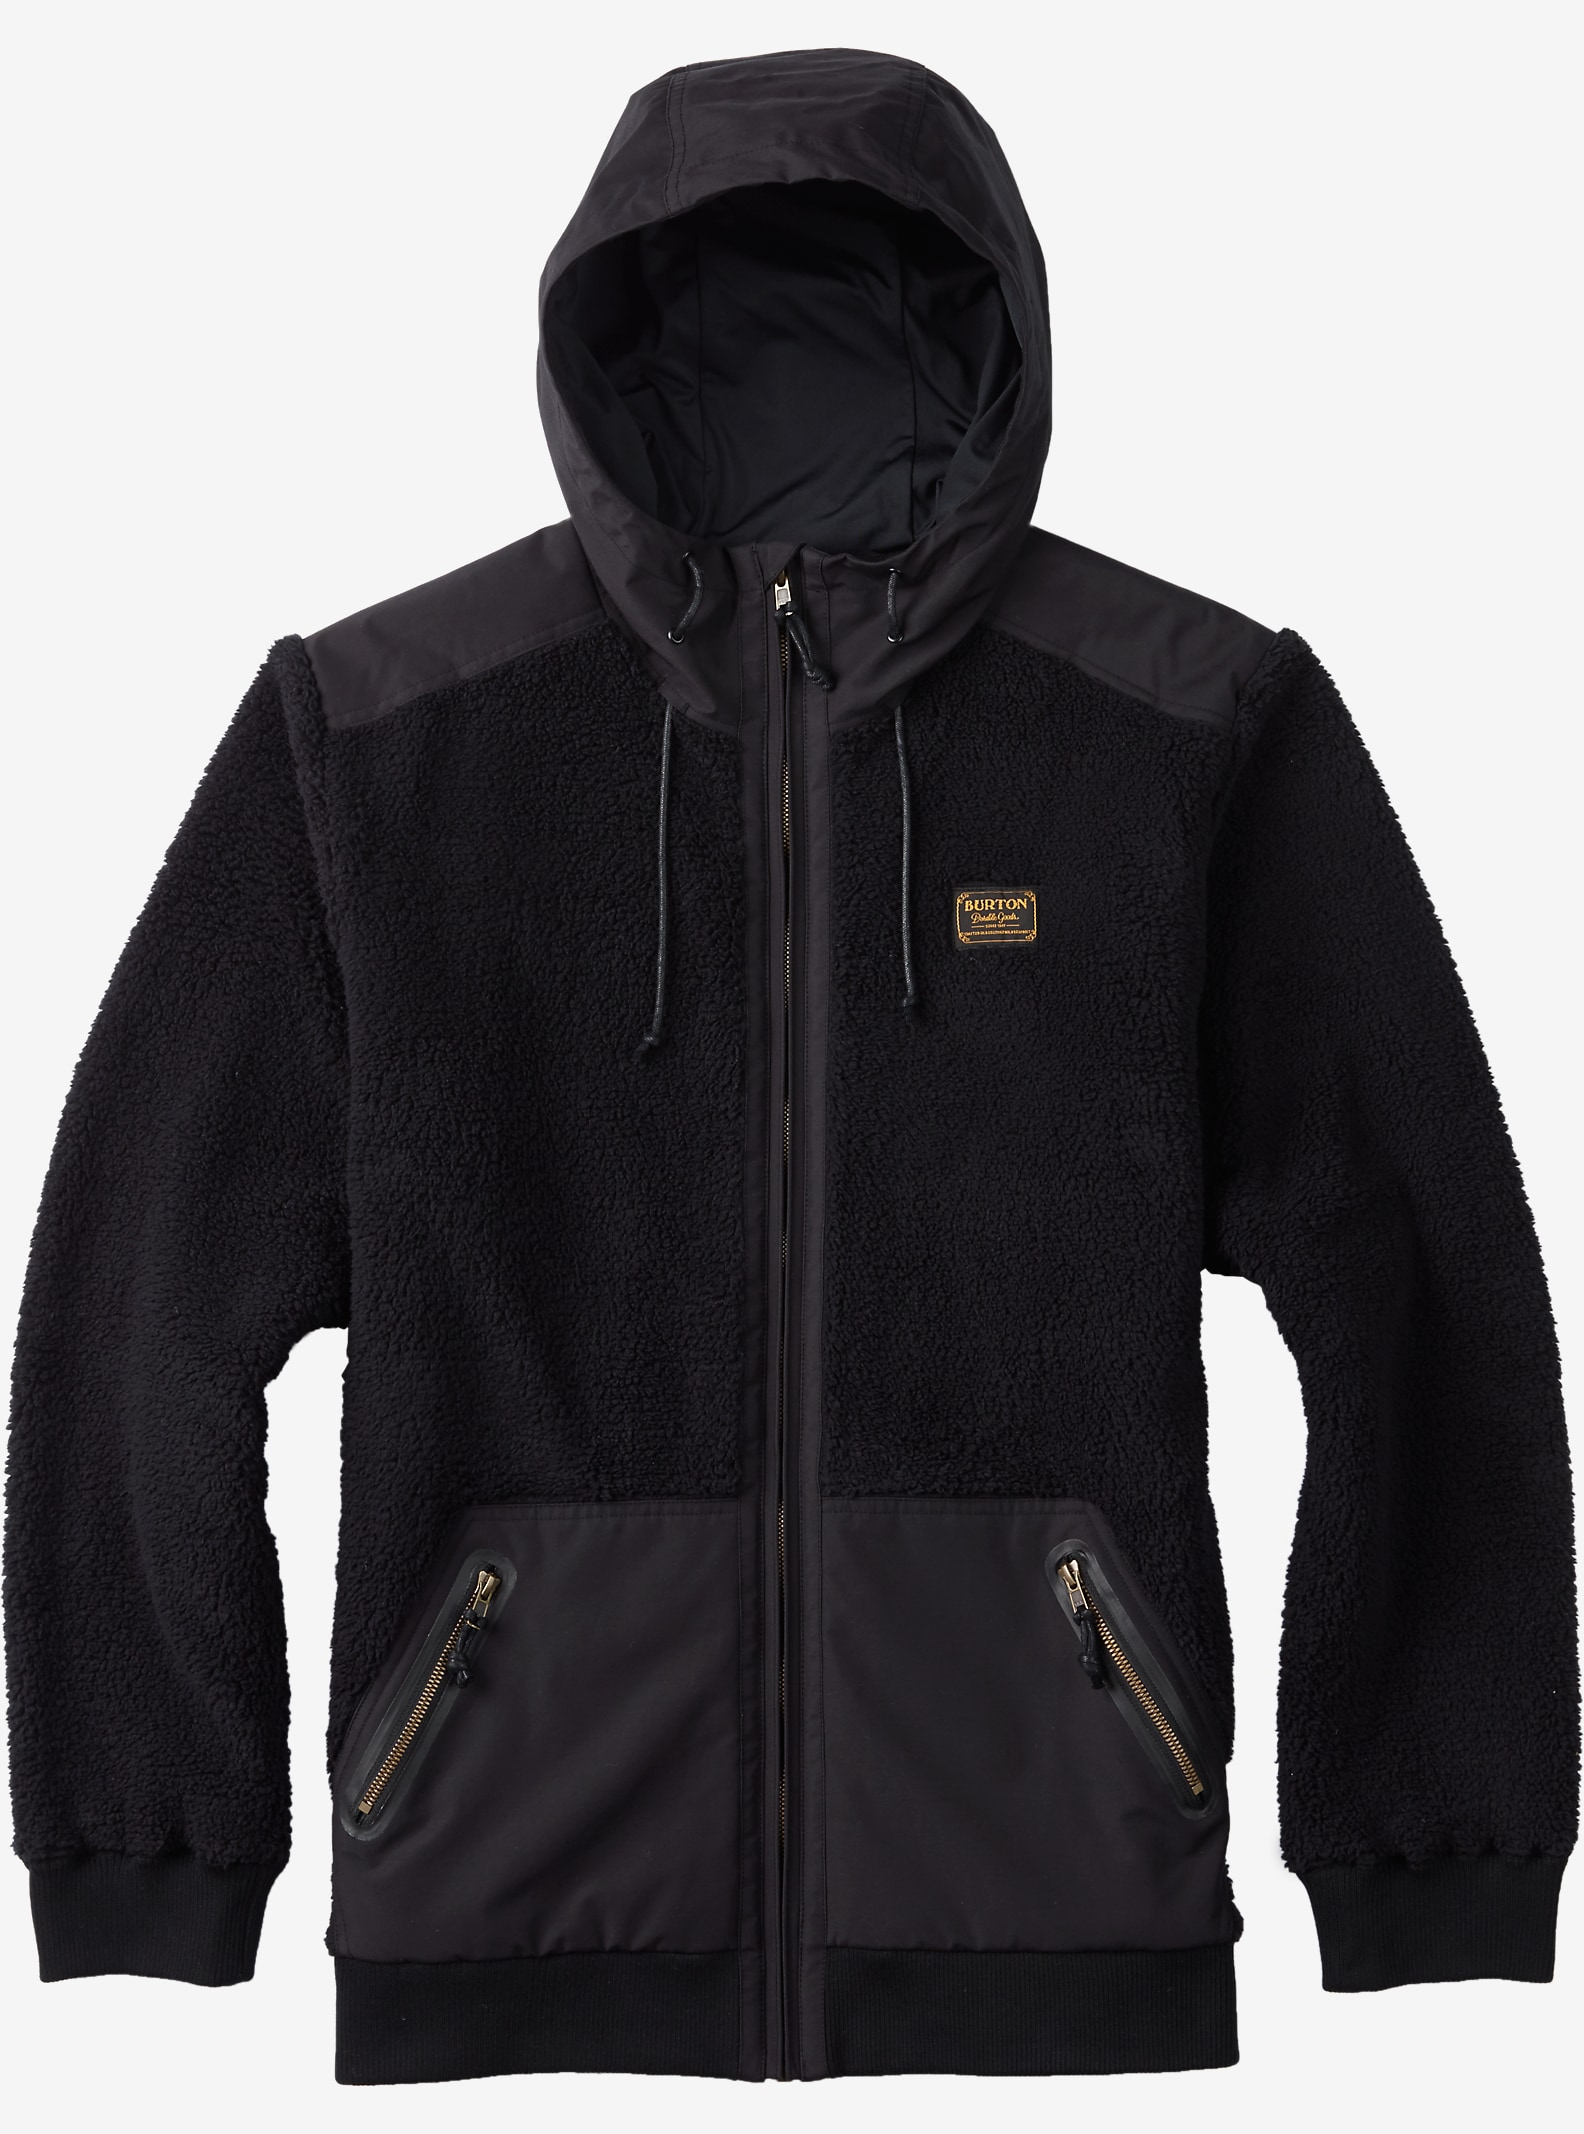 Burton Tribute Full-Zip Fleece shown in True Black